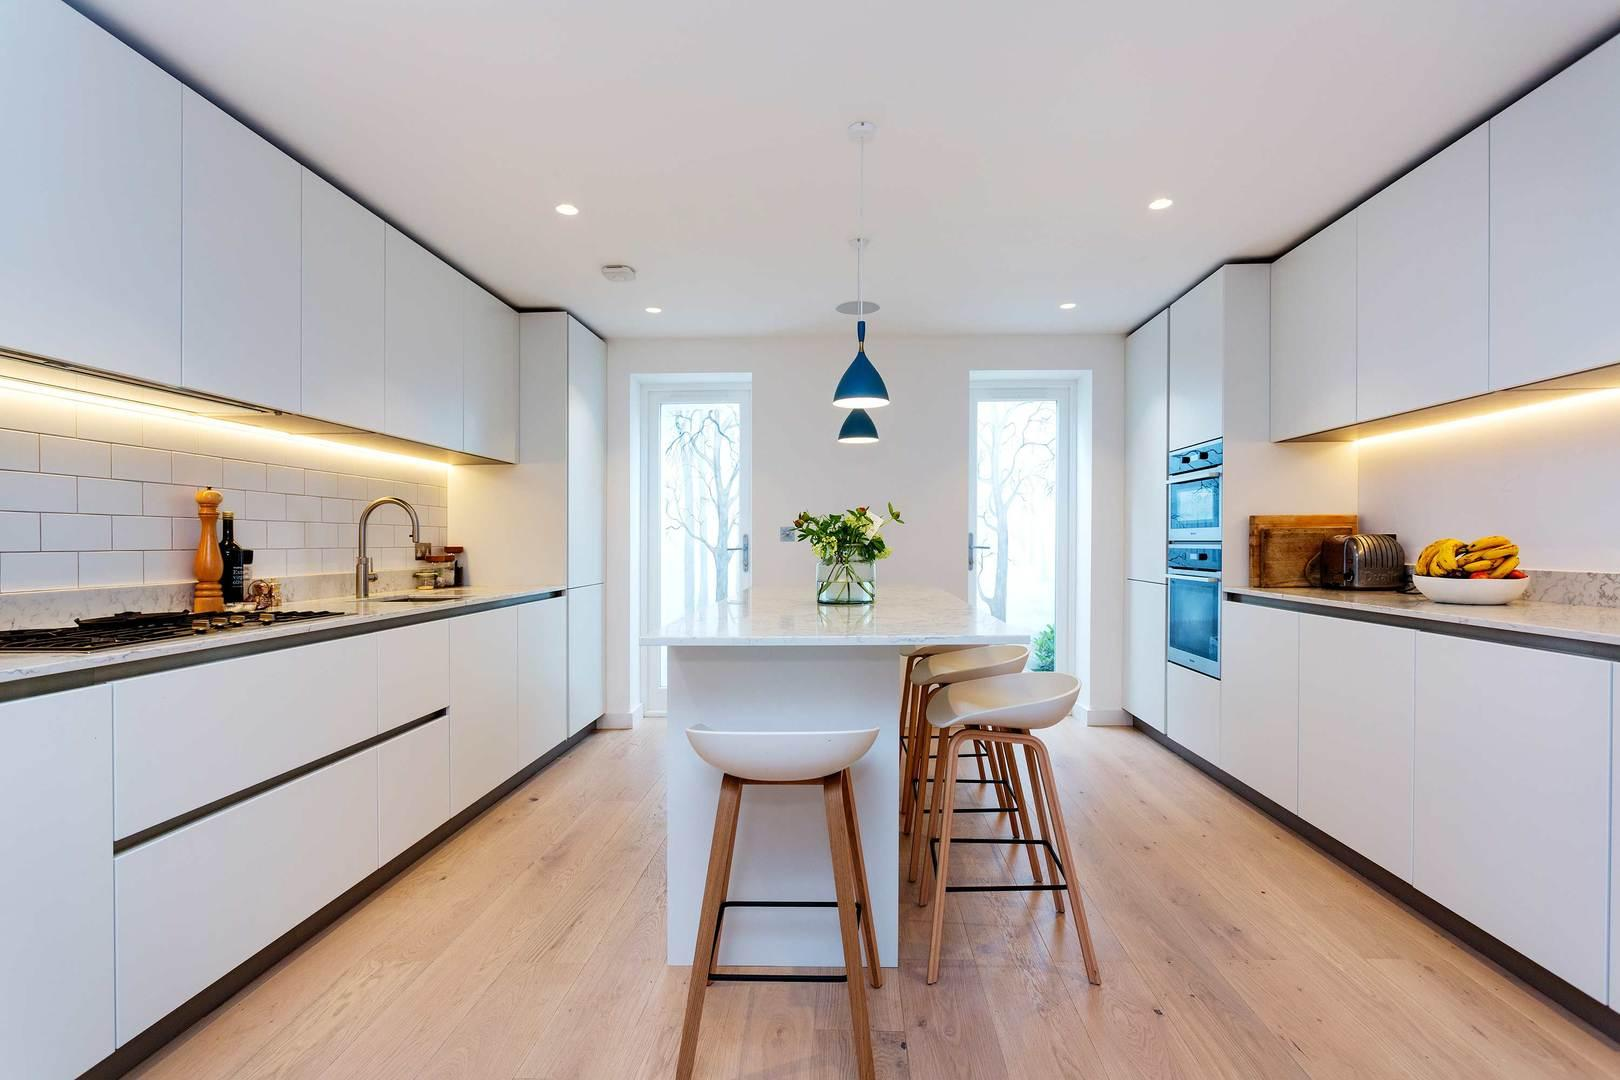 Property Image 1 - Elegant Townhouse in Sought After Notting Hill Area